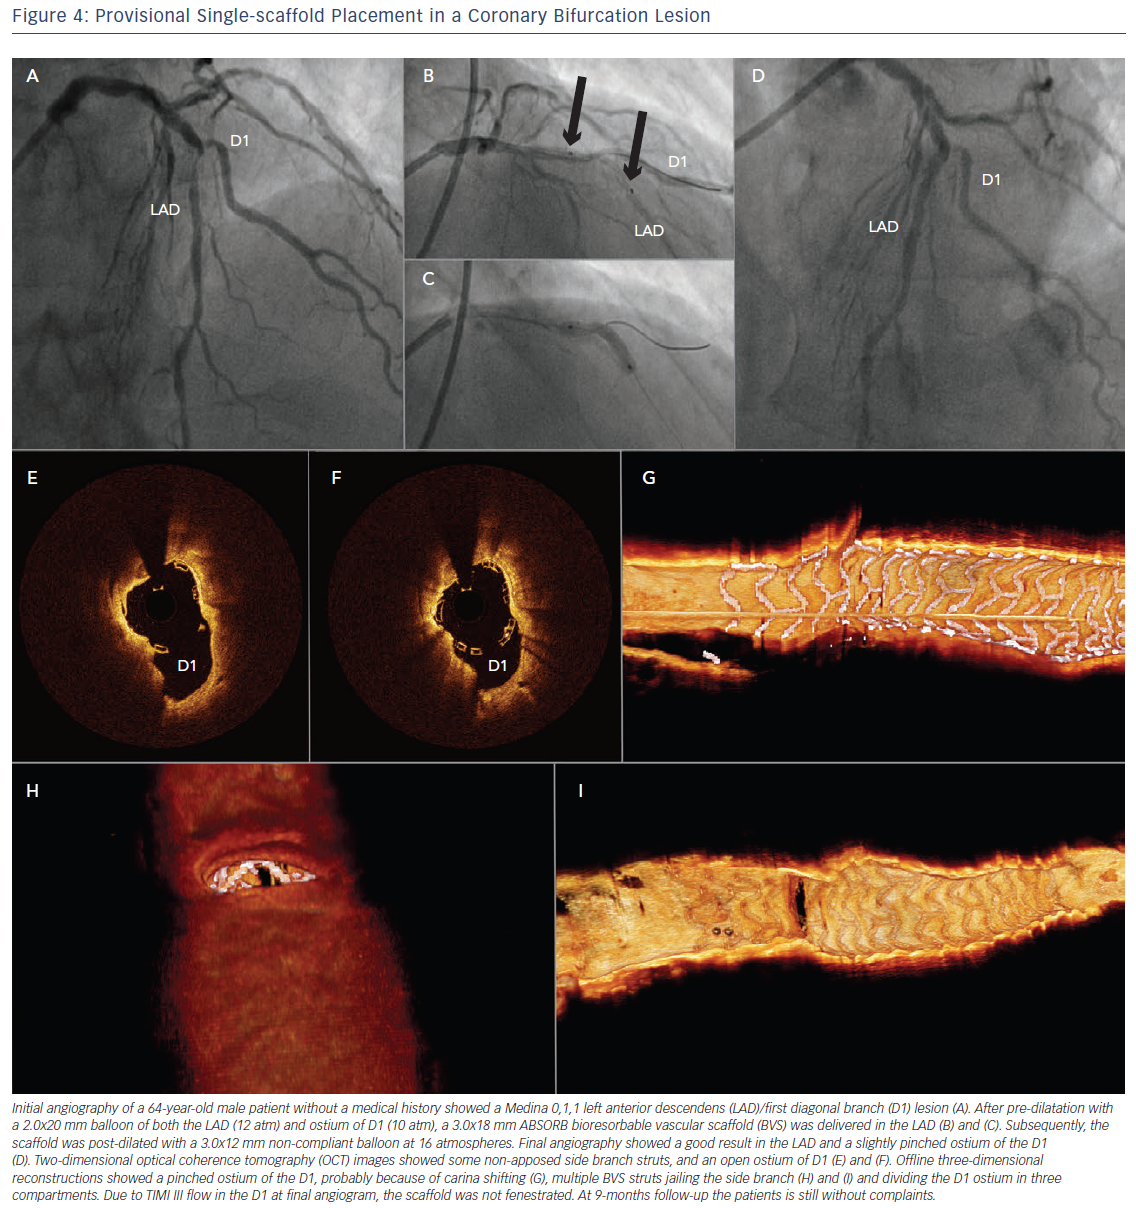 Provisional Single-scaffold Placement in a Coronary Bifurcation Lesion